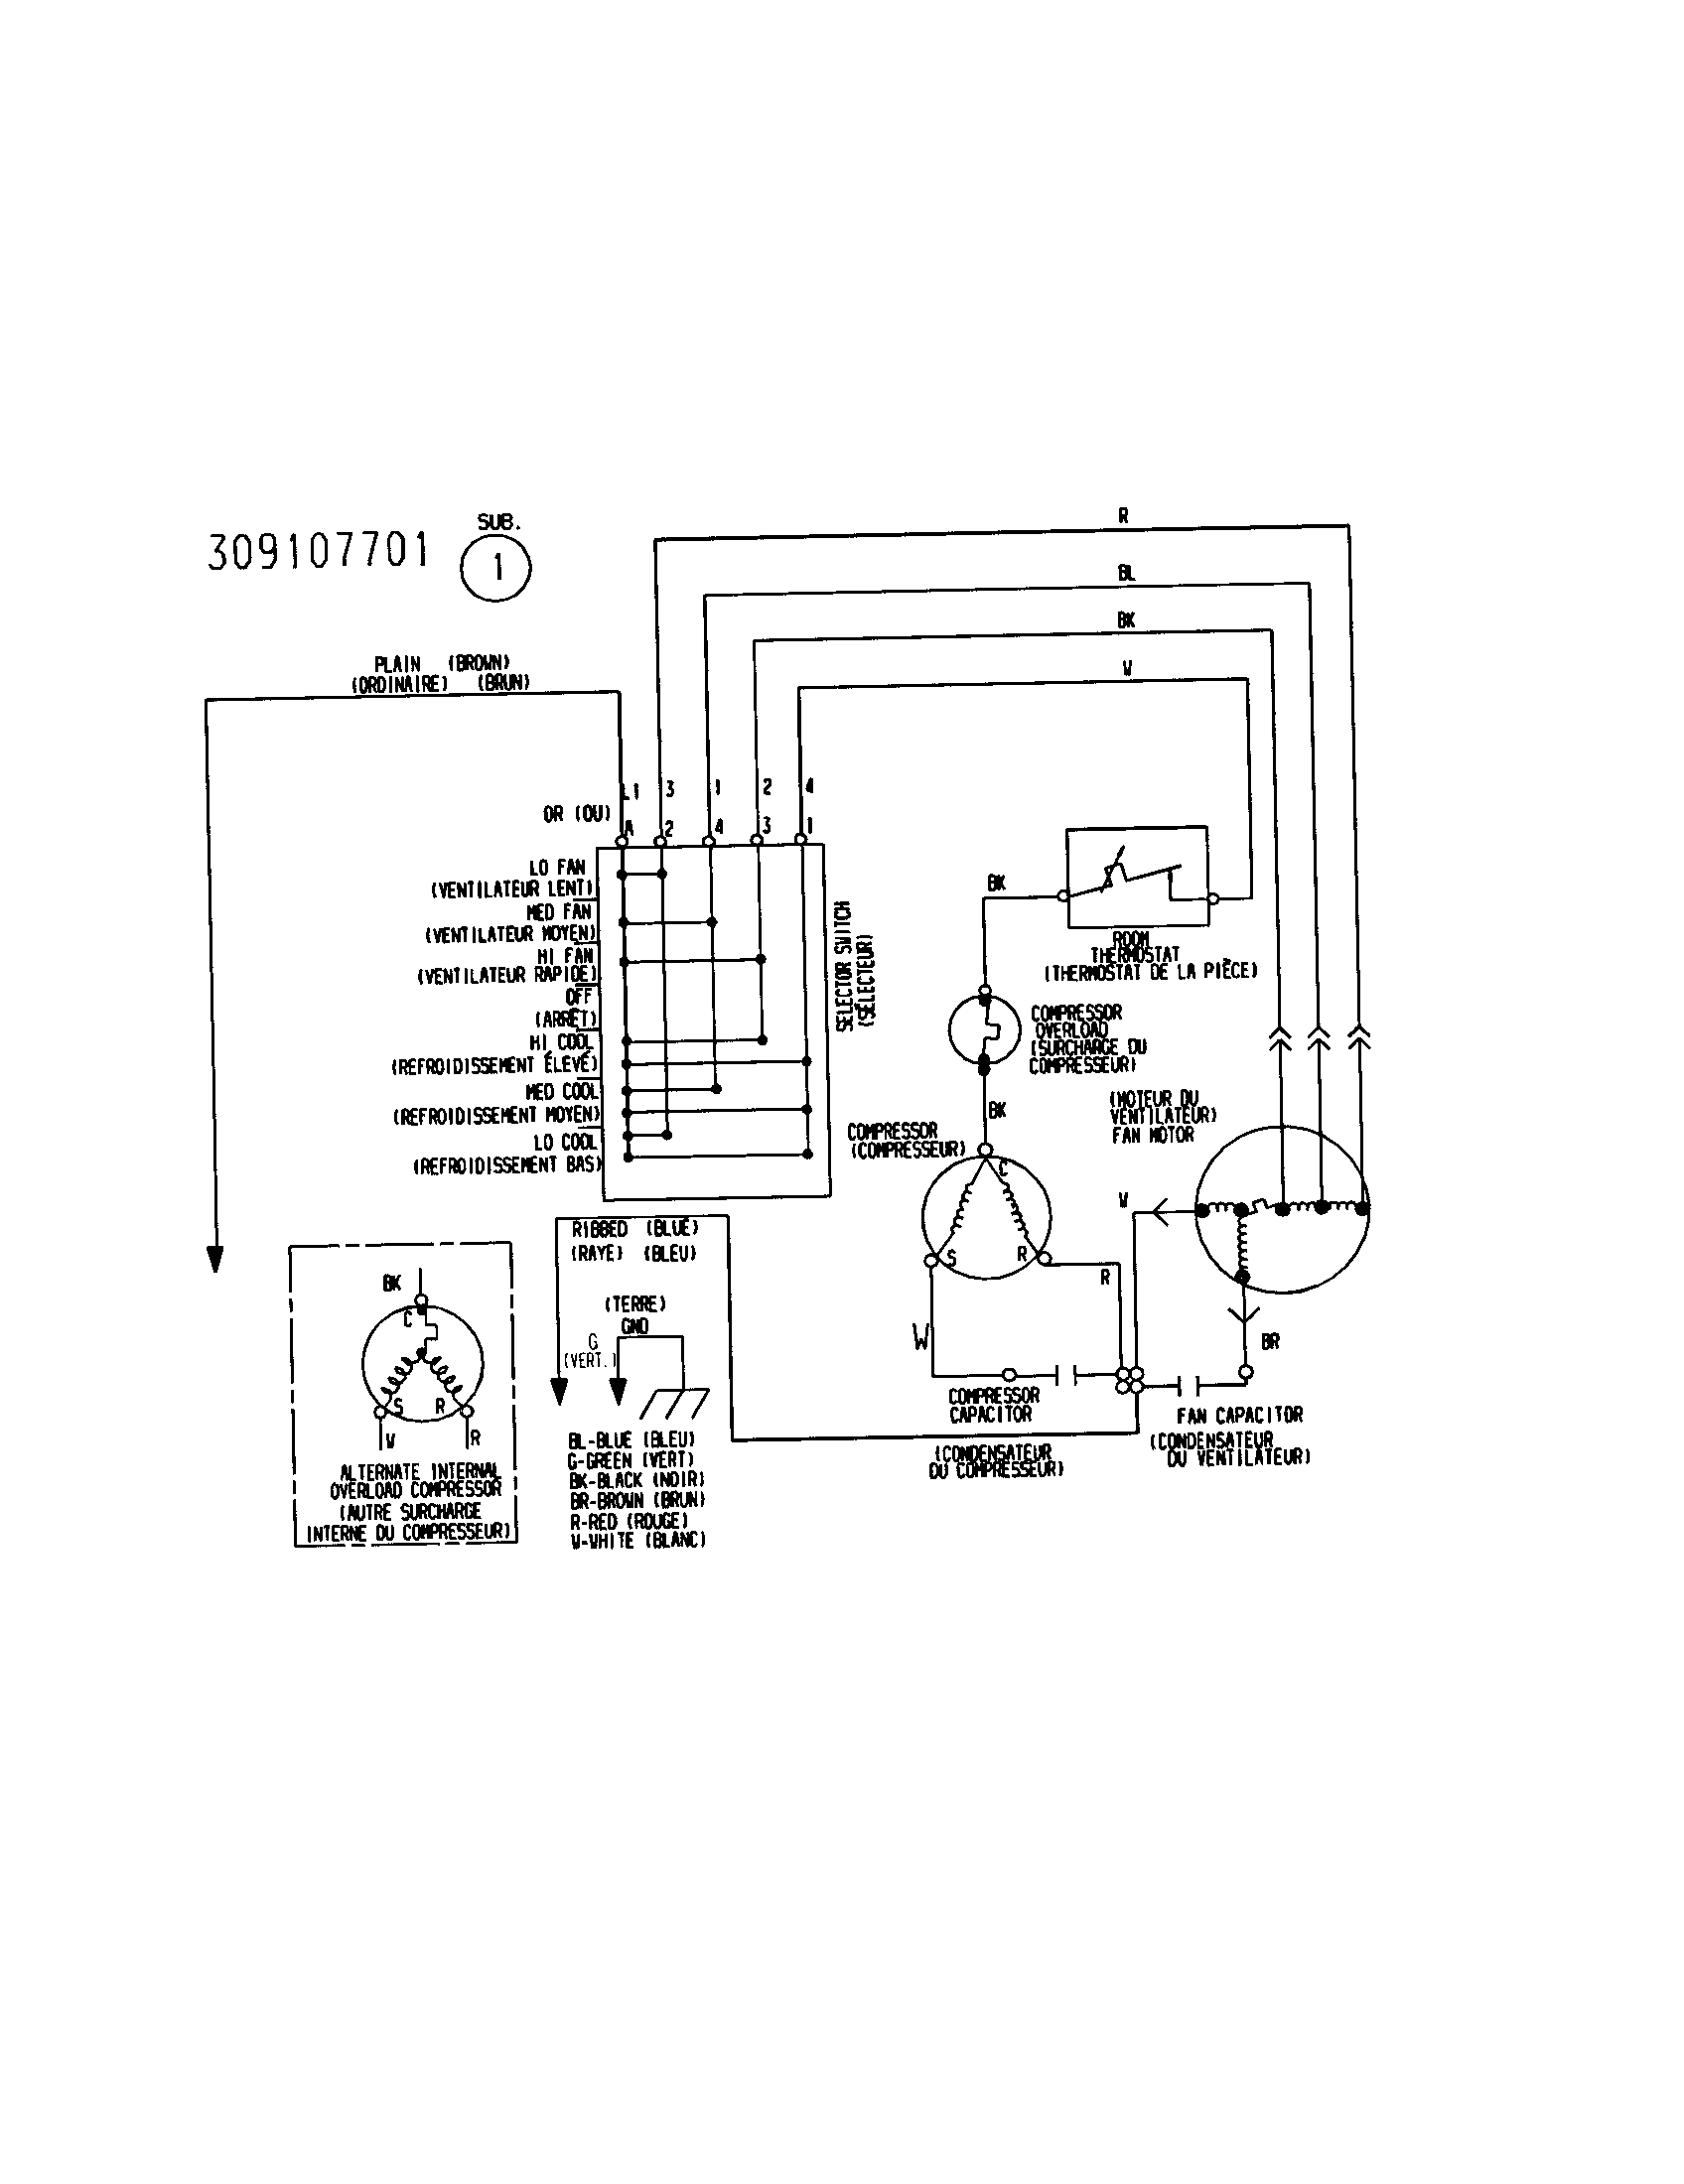 Wiring Diagram Air Conditioner Window Type. Wiring. Best